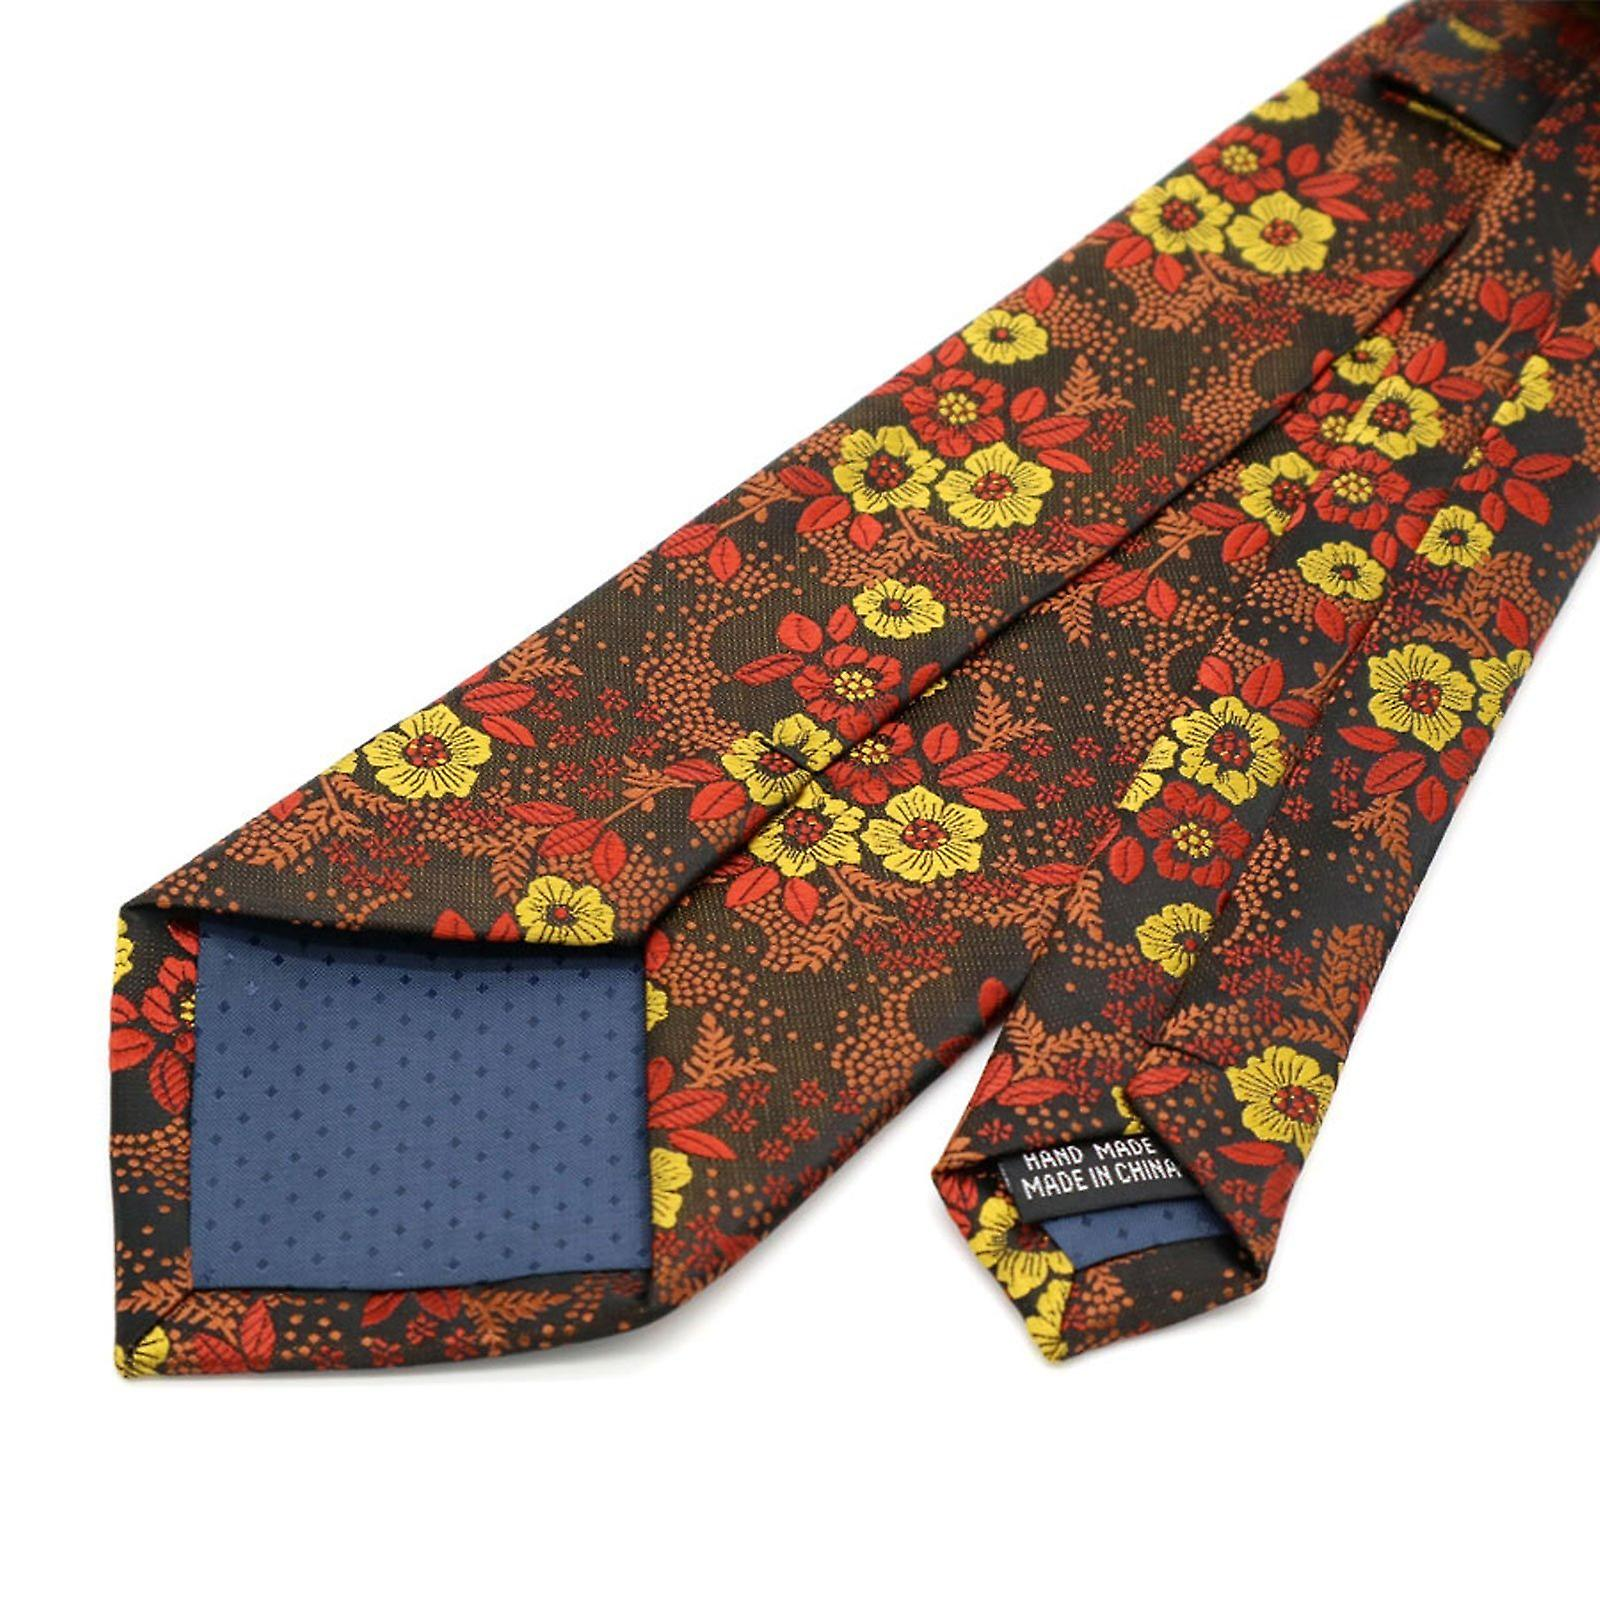 Bronze & yellow wedding floral tie & pocket square set